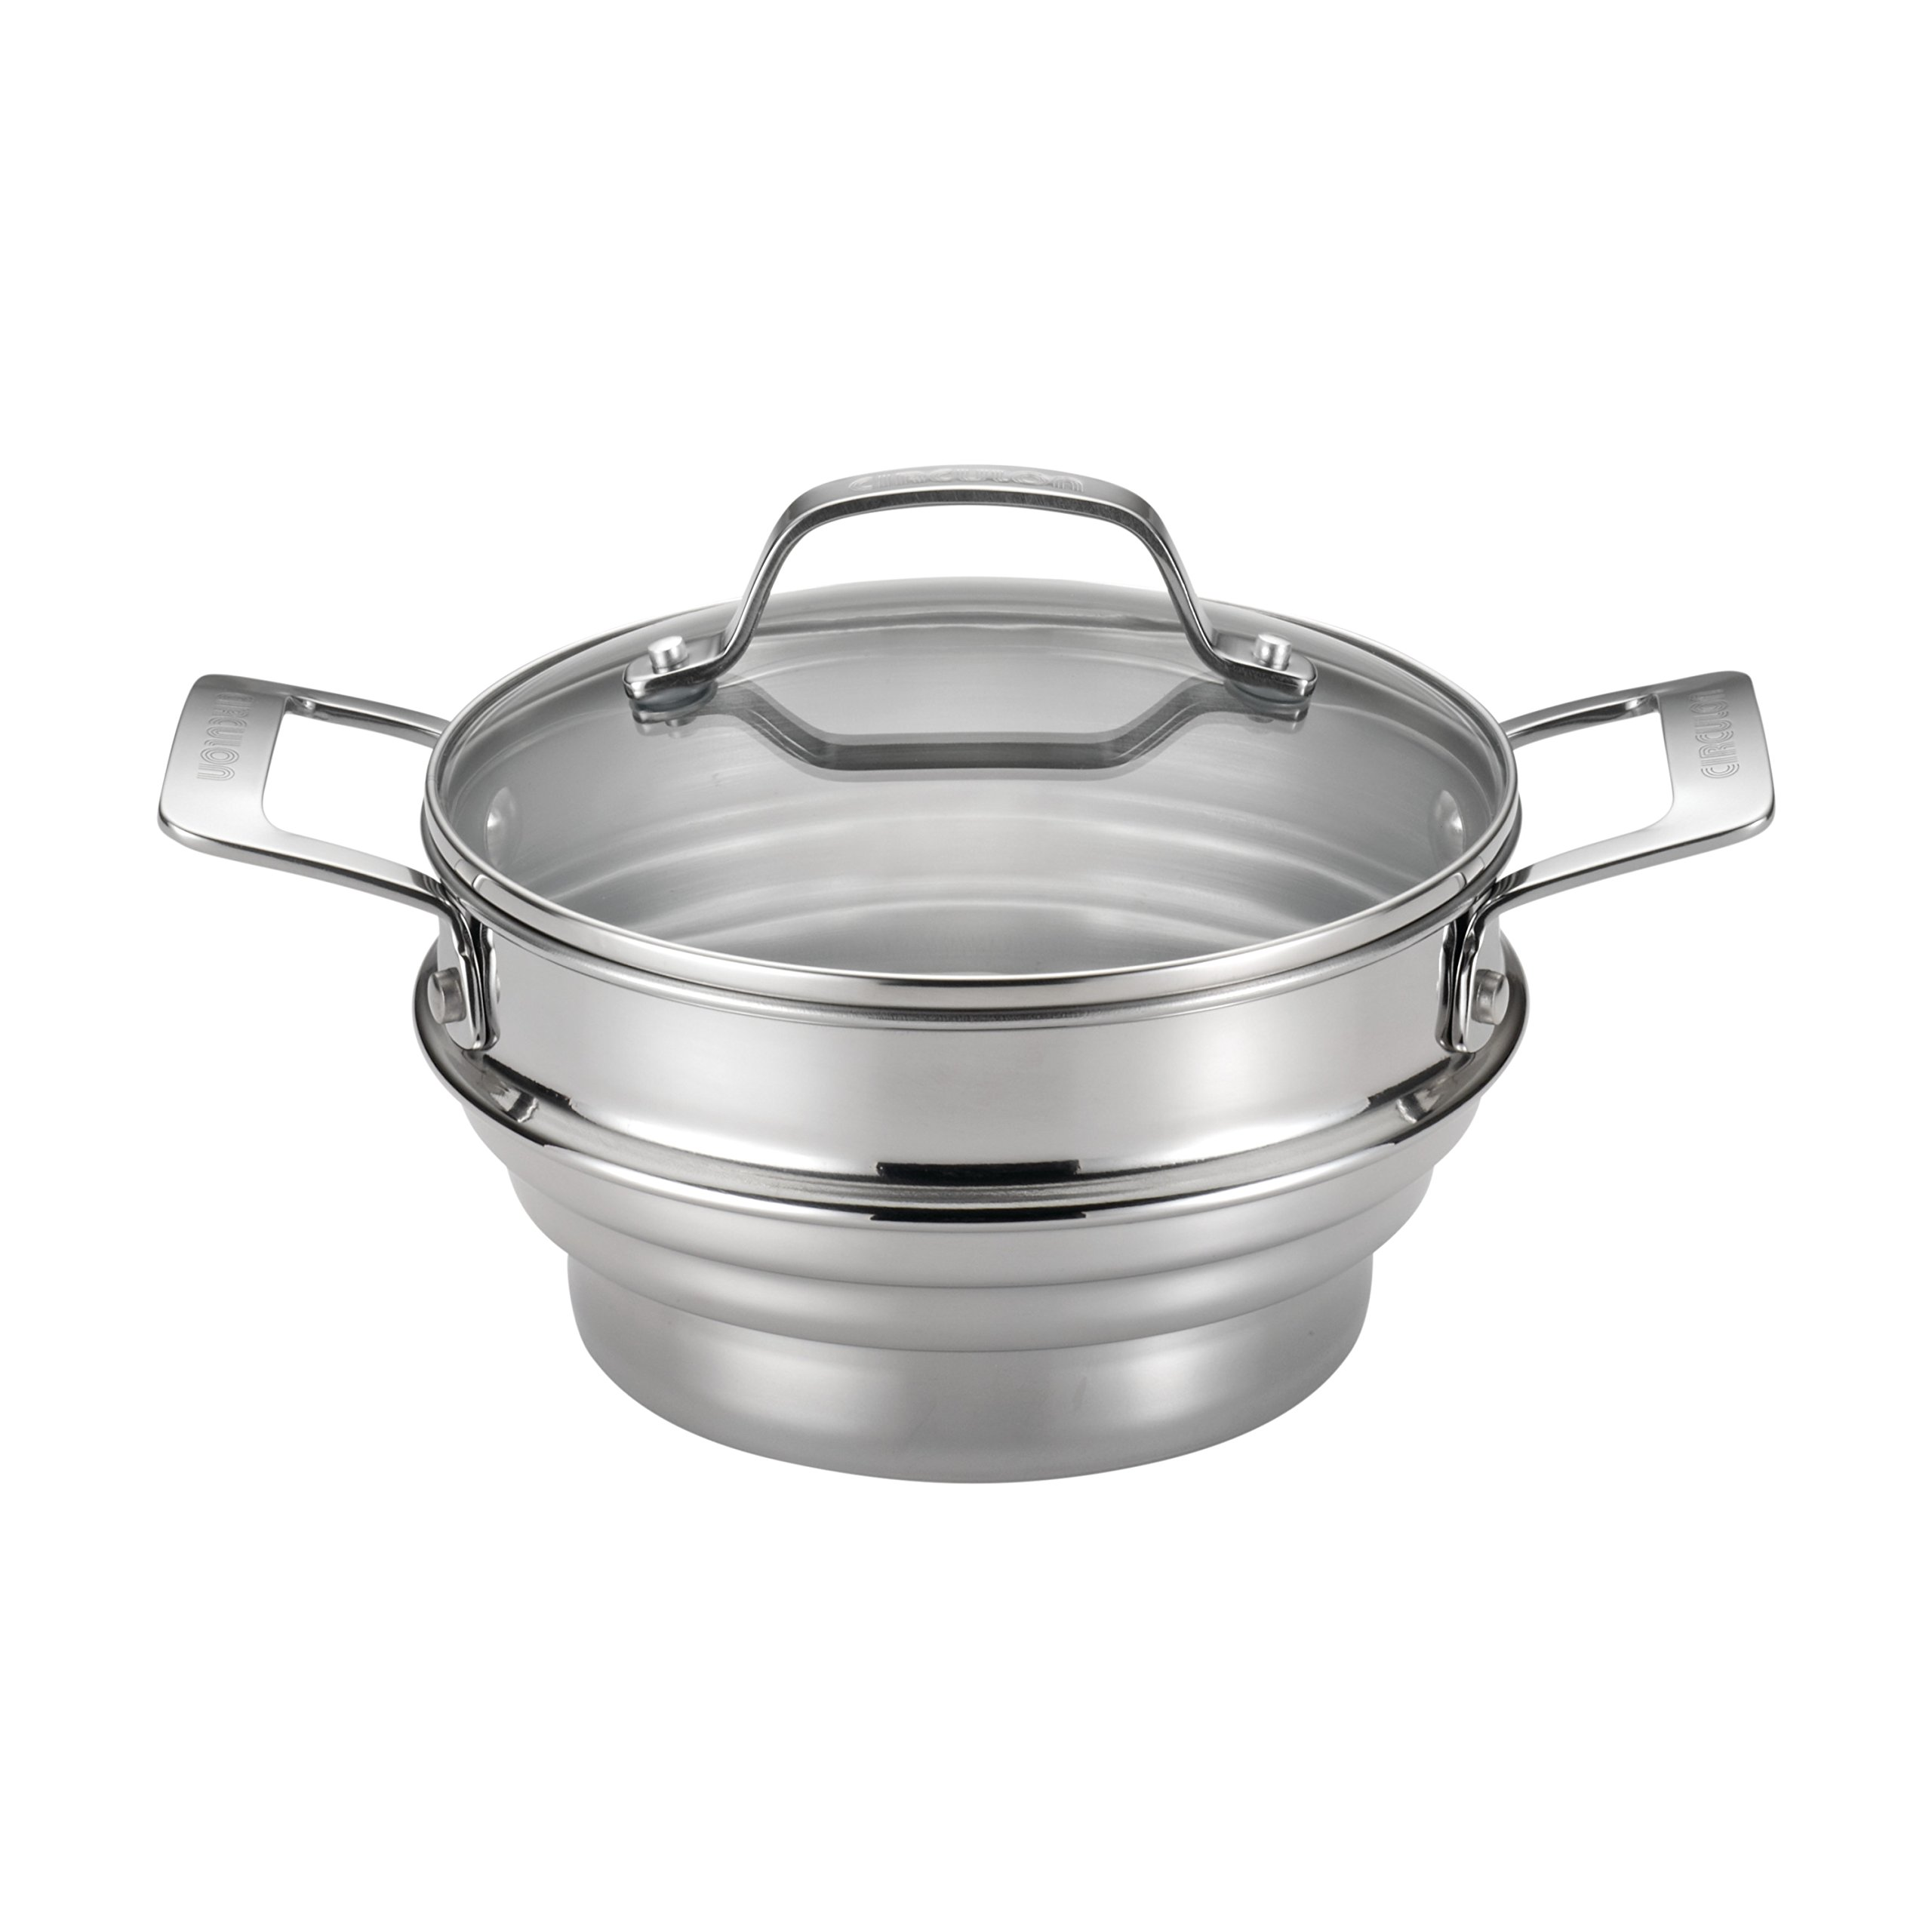 Circulon Stainless Steel Universal Steamer with Lid by Circulon